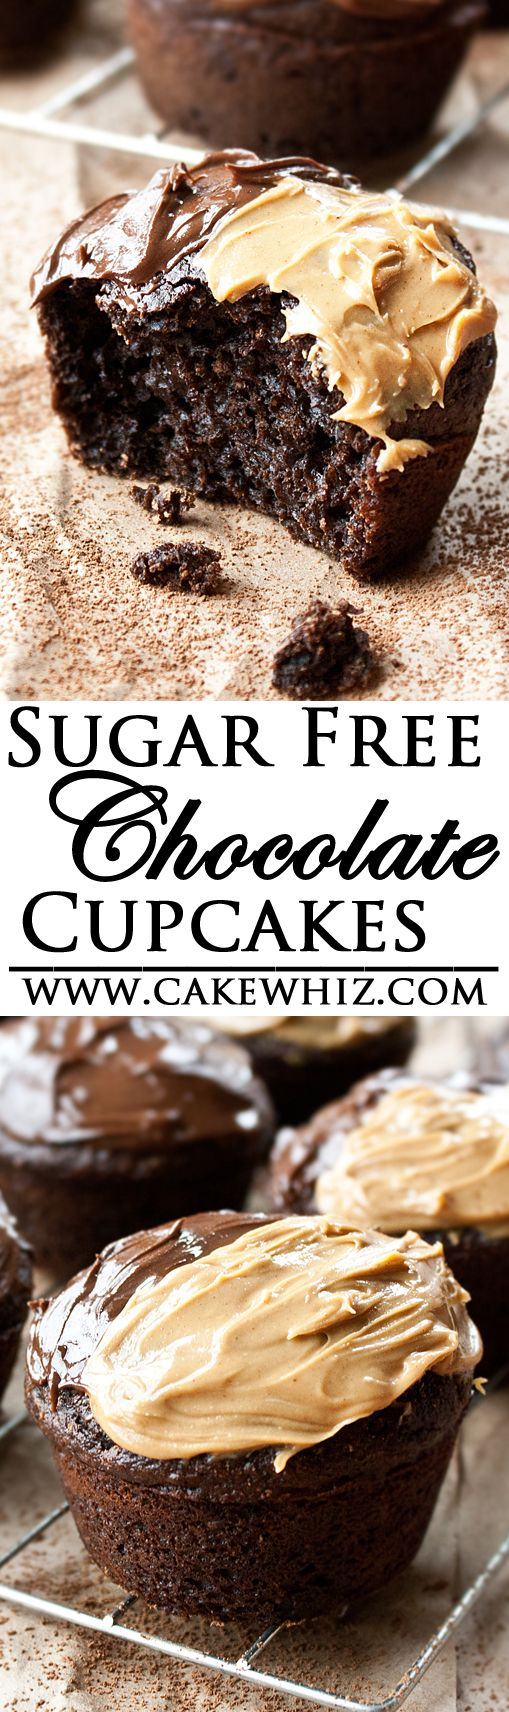 Easy recipes for sugar free cakes